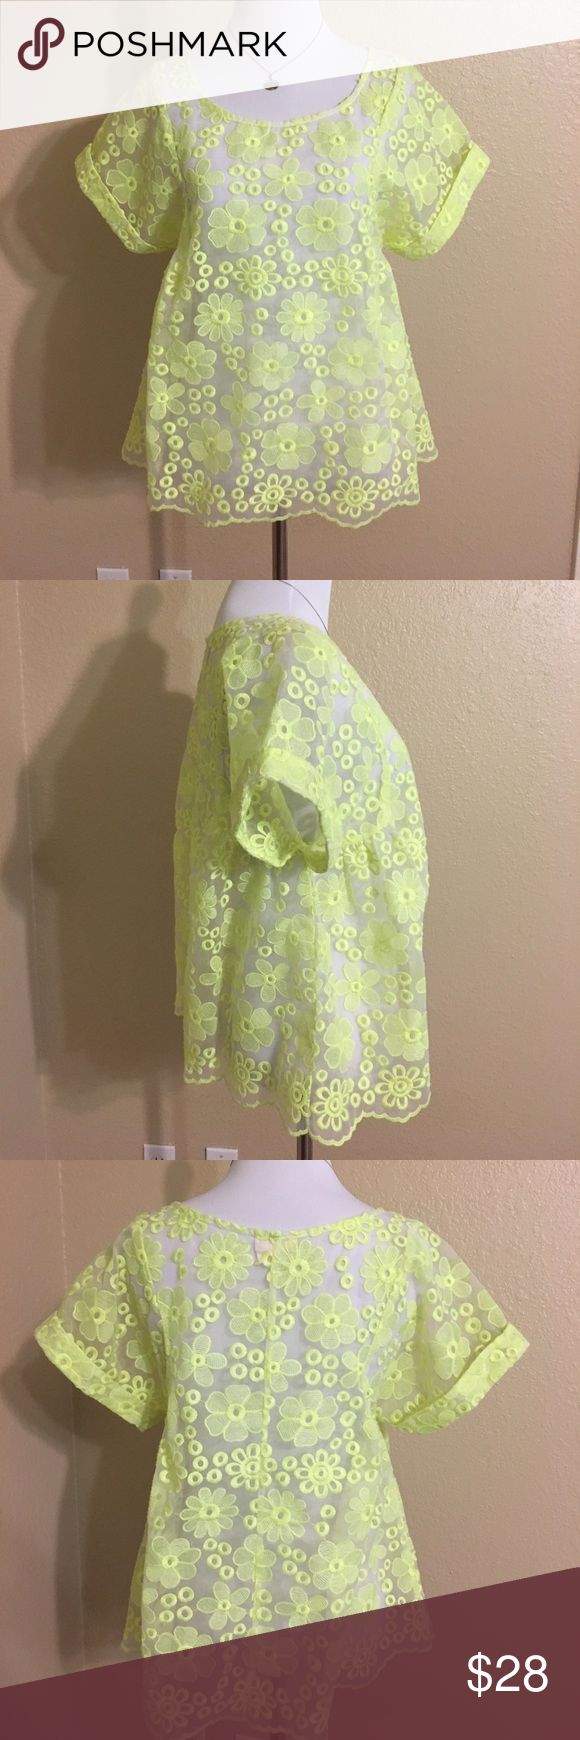 Anthropologie Meadow Rue sheer neon yellow top s Electric and eye catching!  Floral sheer top from Anthropologie by Meadow Rue.  Scalloped bottom hem, cuffed sleeves and a bit of a swing to the style.  Looks sweet layered with jeans and tank tops.   A real statement piece.  Bundle this with the other Meadow Rue Top for the best deal! Anthropologie Tops Blouses